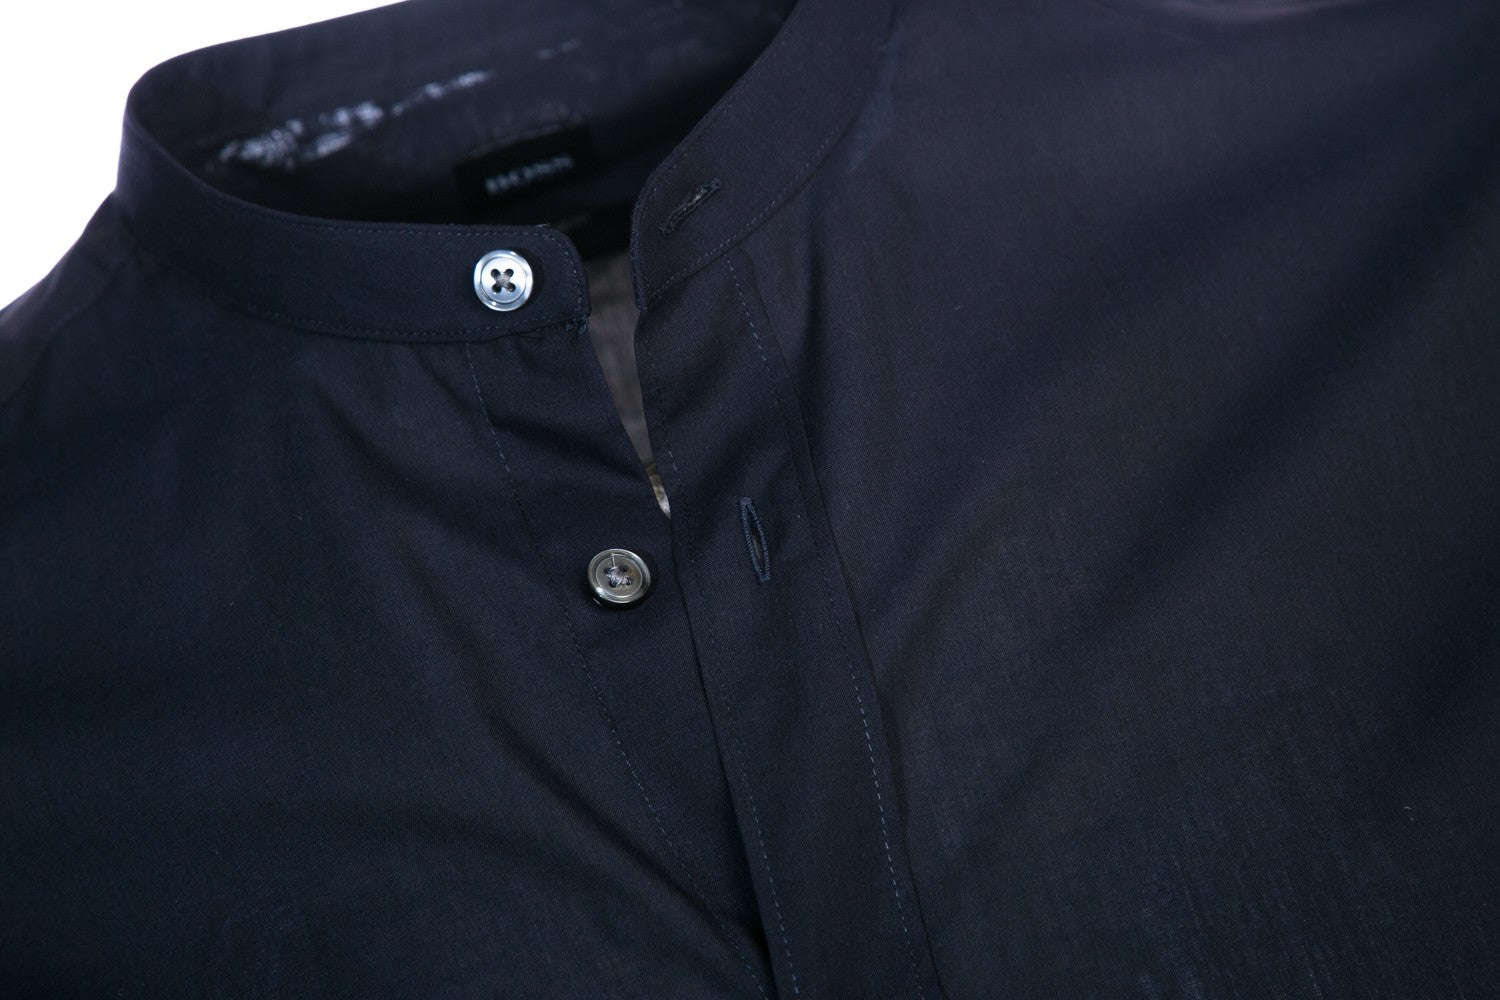 Hugo Boss - Lamberto - Regular Fit Band Collar Shirt in Navy Blue